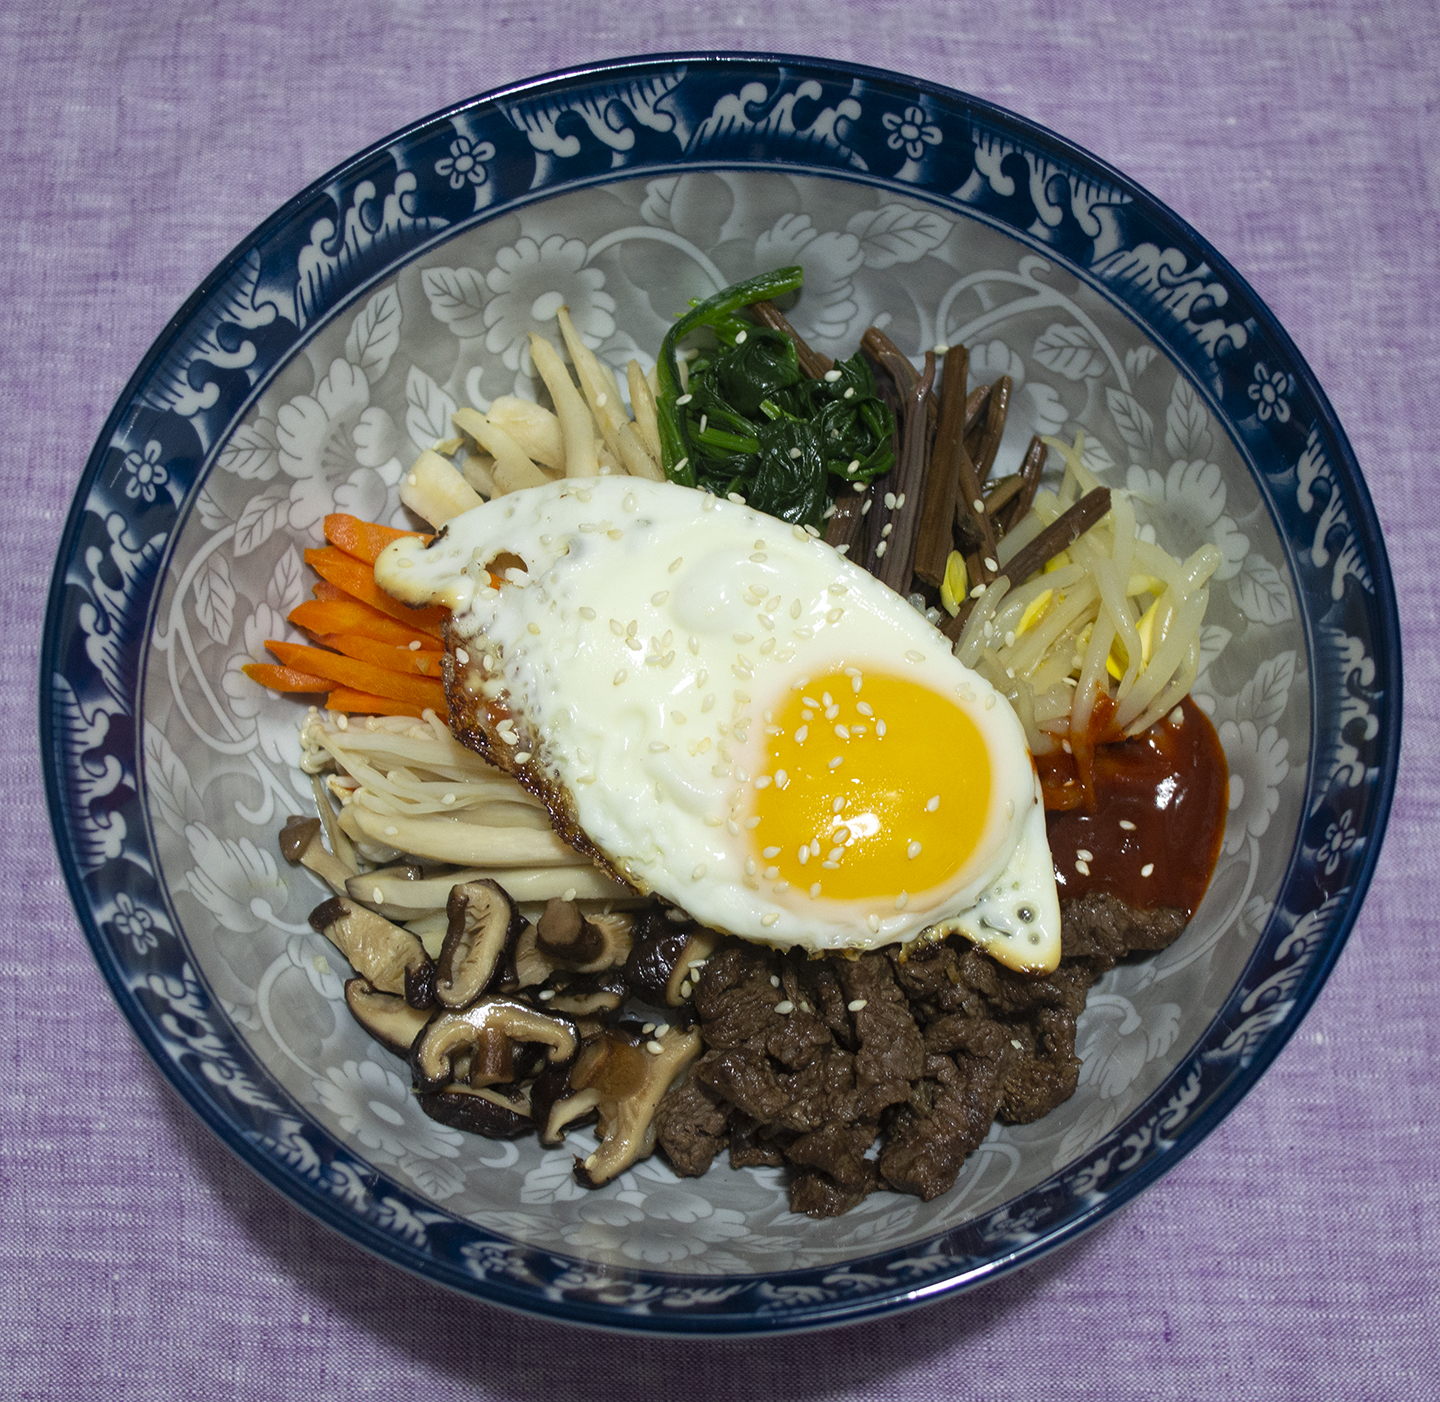 Bibimbap (비빔밥) - Seasoned Vegetable and Beef Rice Bowl